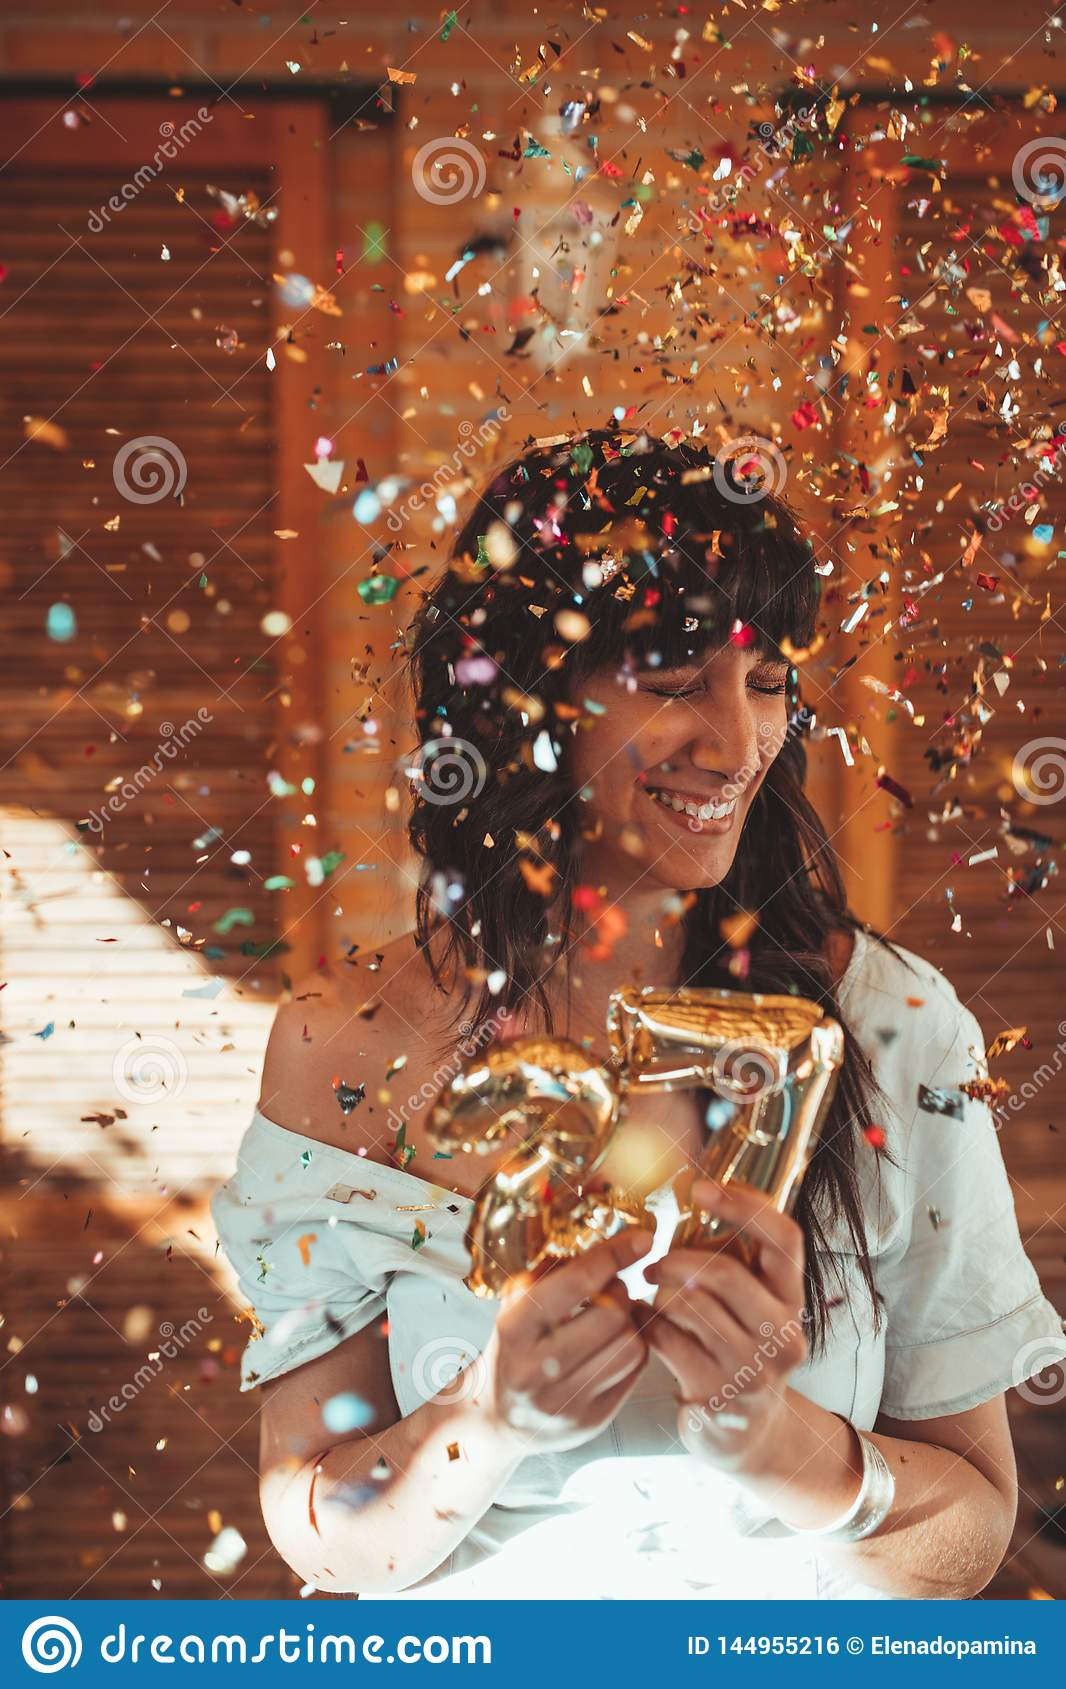 Smiling woman celebrating her 27th birthday with golden numbers and confetti